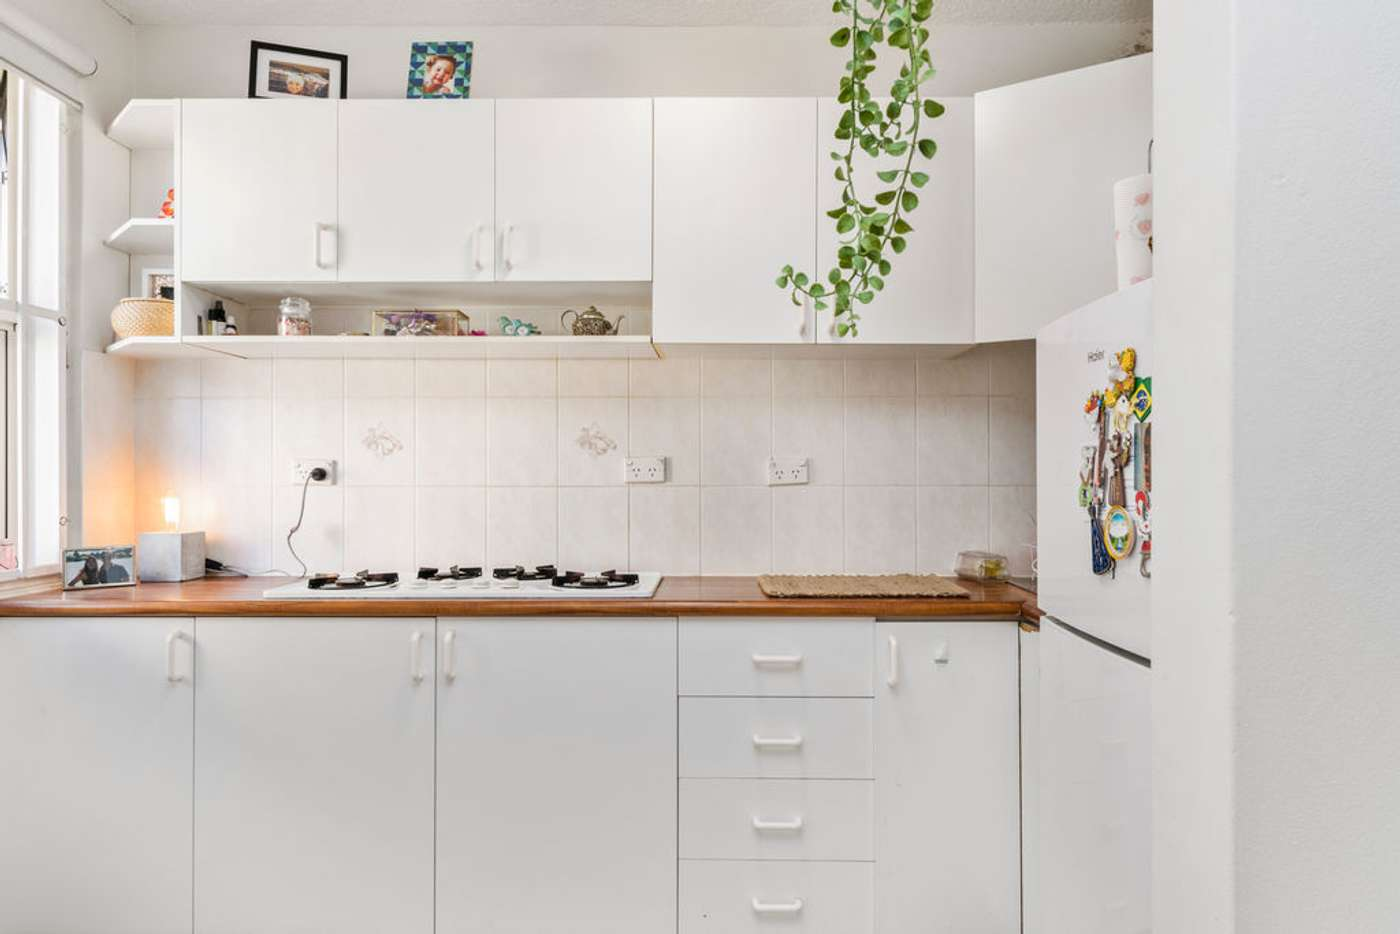 Main view of Homely studio listing, 15/54A Hopewell Street, Paddington NSW 2021